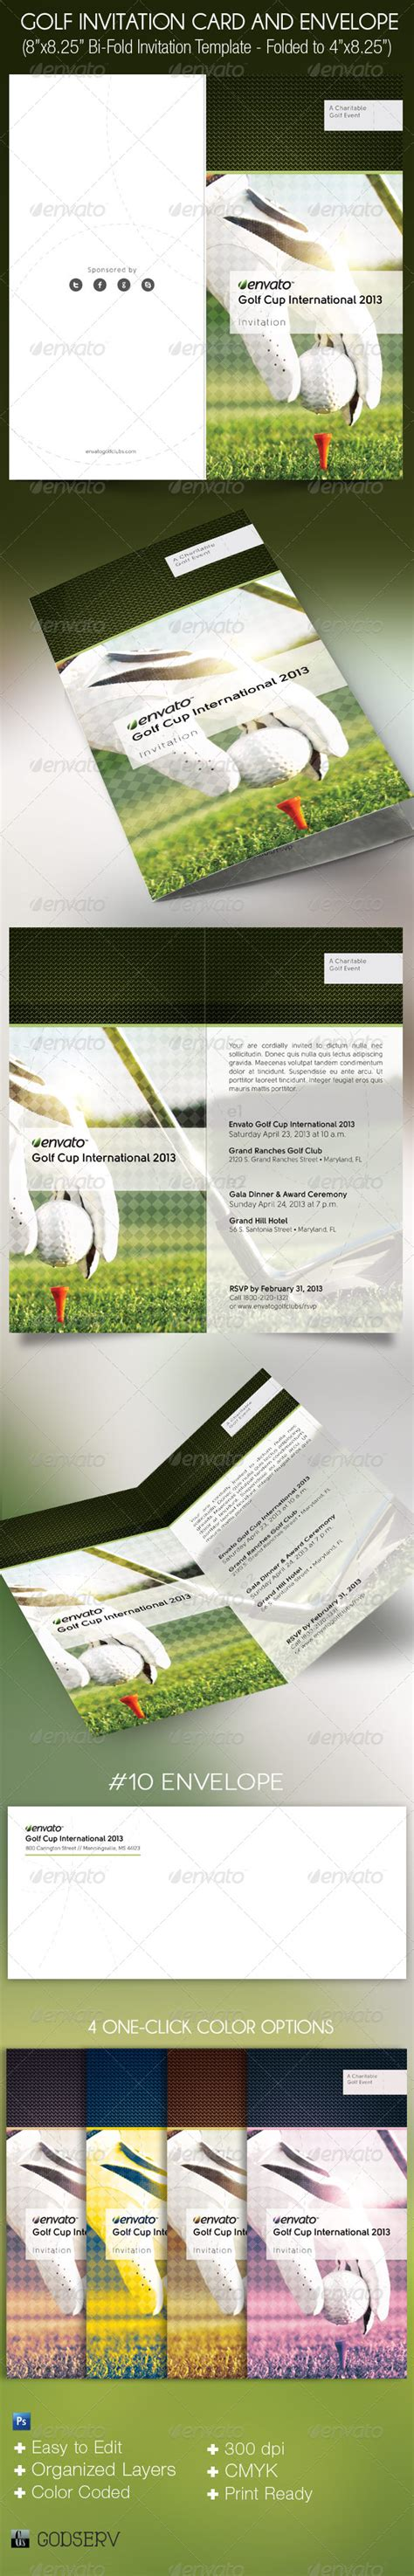 golf membership card template golf invitation card and envelope template by godserv on